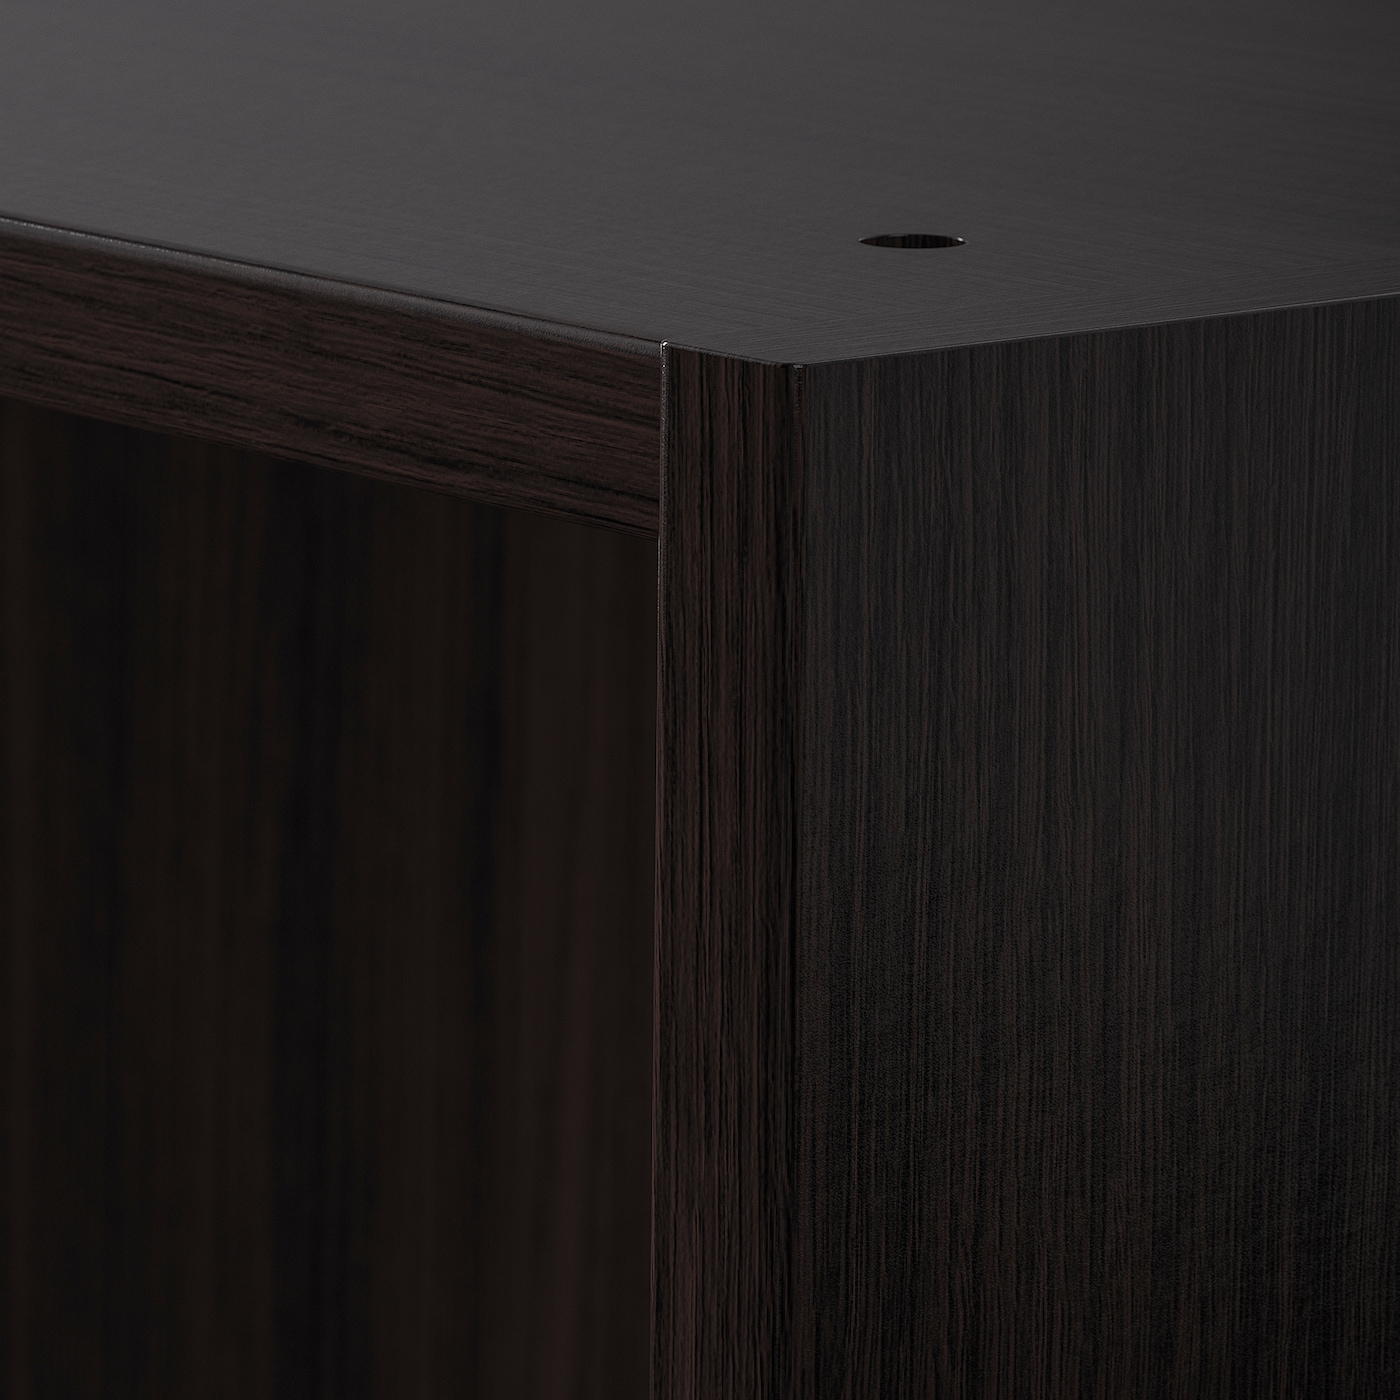 PAX Wardrobe frame, black-brown, 75x58x236 cm